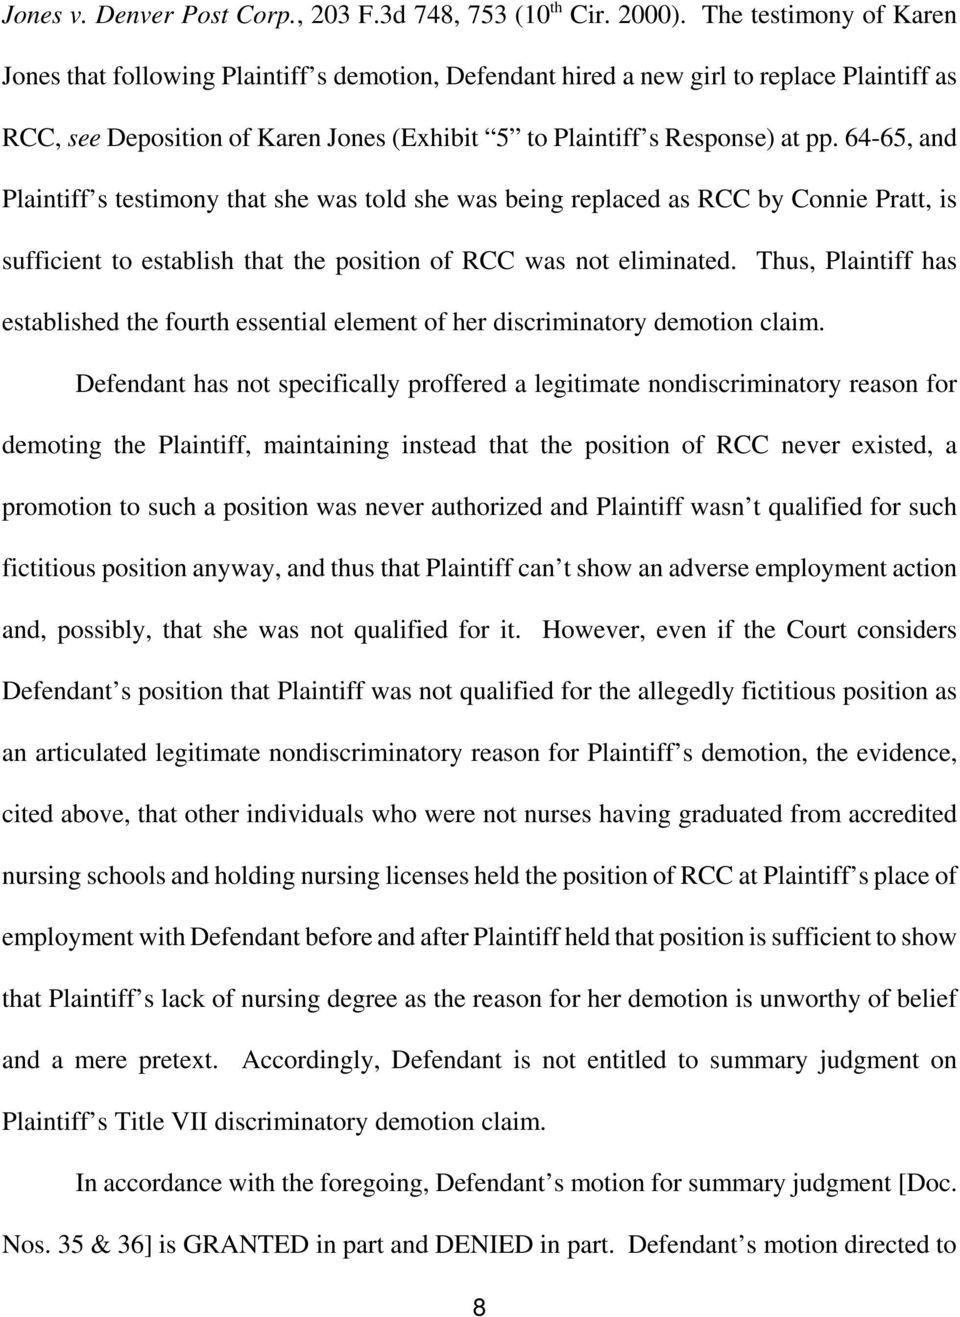 64-65, and Plaintiff s testimony that she was told she was being replaced as RCC by Connie Pratt, is sufficient to establish that the position of RCC was not eliminated.